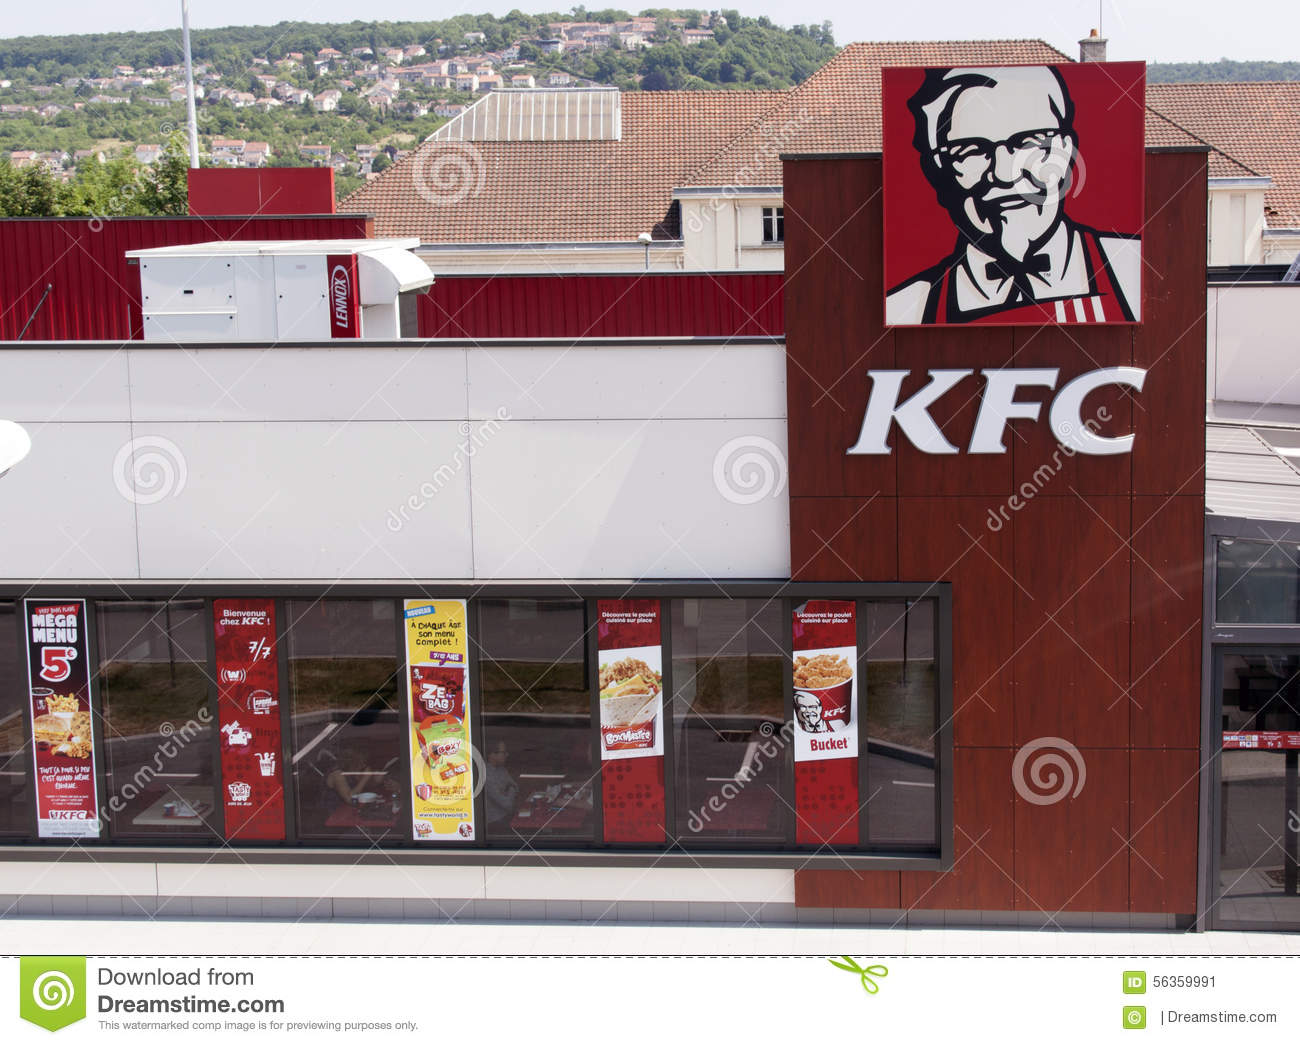 kfc corporation There are 22 companies that go by the name of kfc corporation in atlanta ga, baltimore md, baton rouge la, boston ma, carson city nv, charleston wv, chicago.